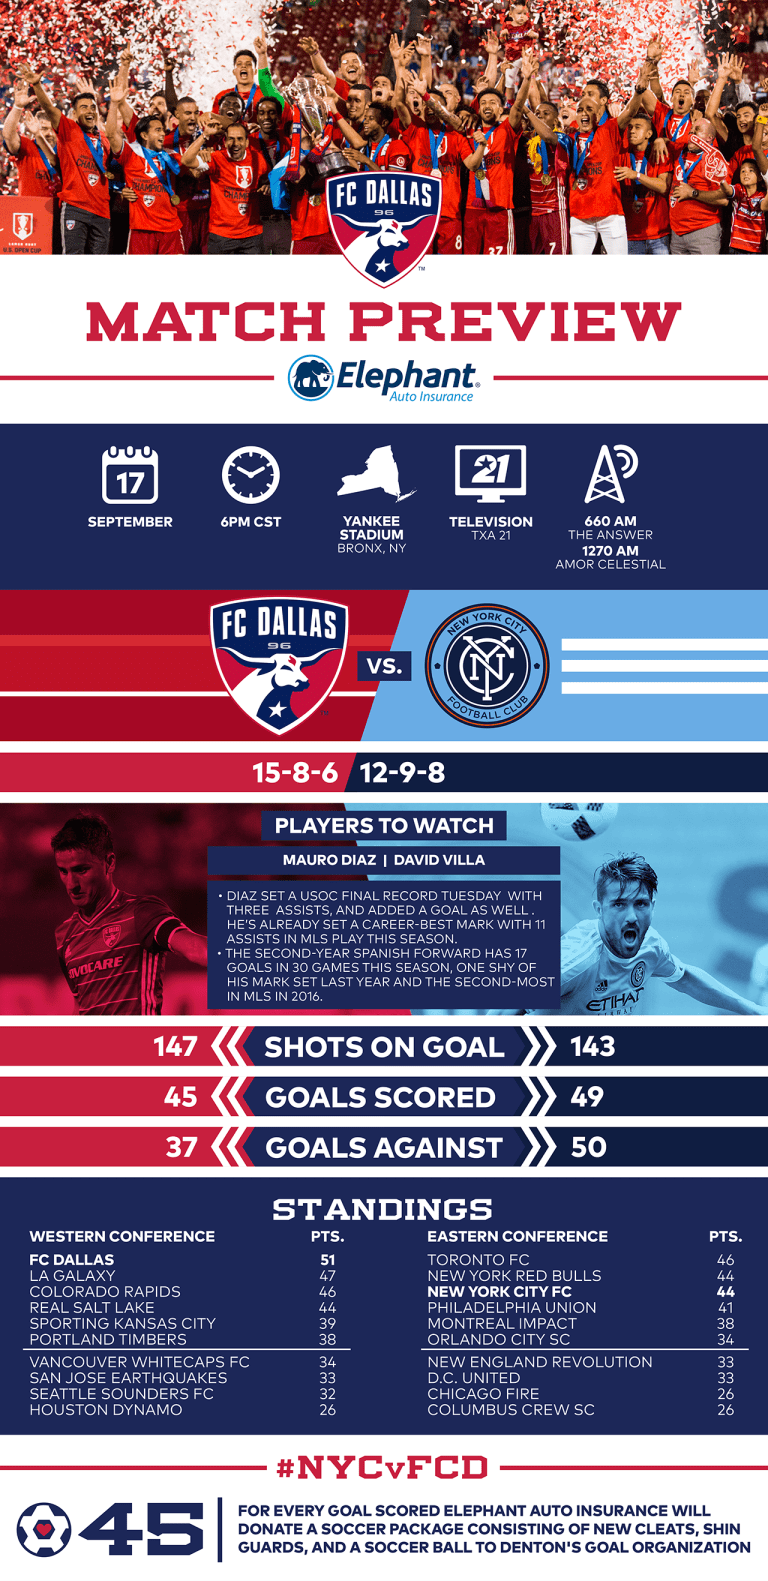 INFOGRAPH: #NYCvFCD -